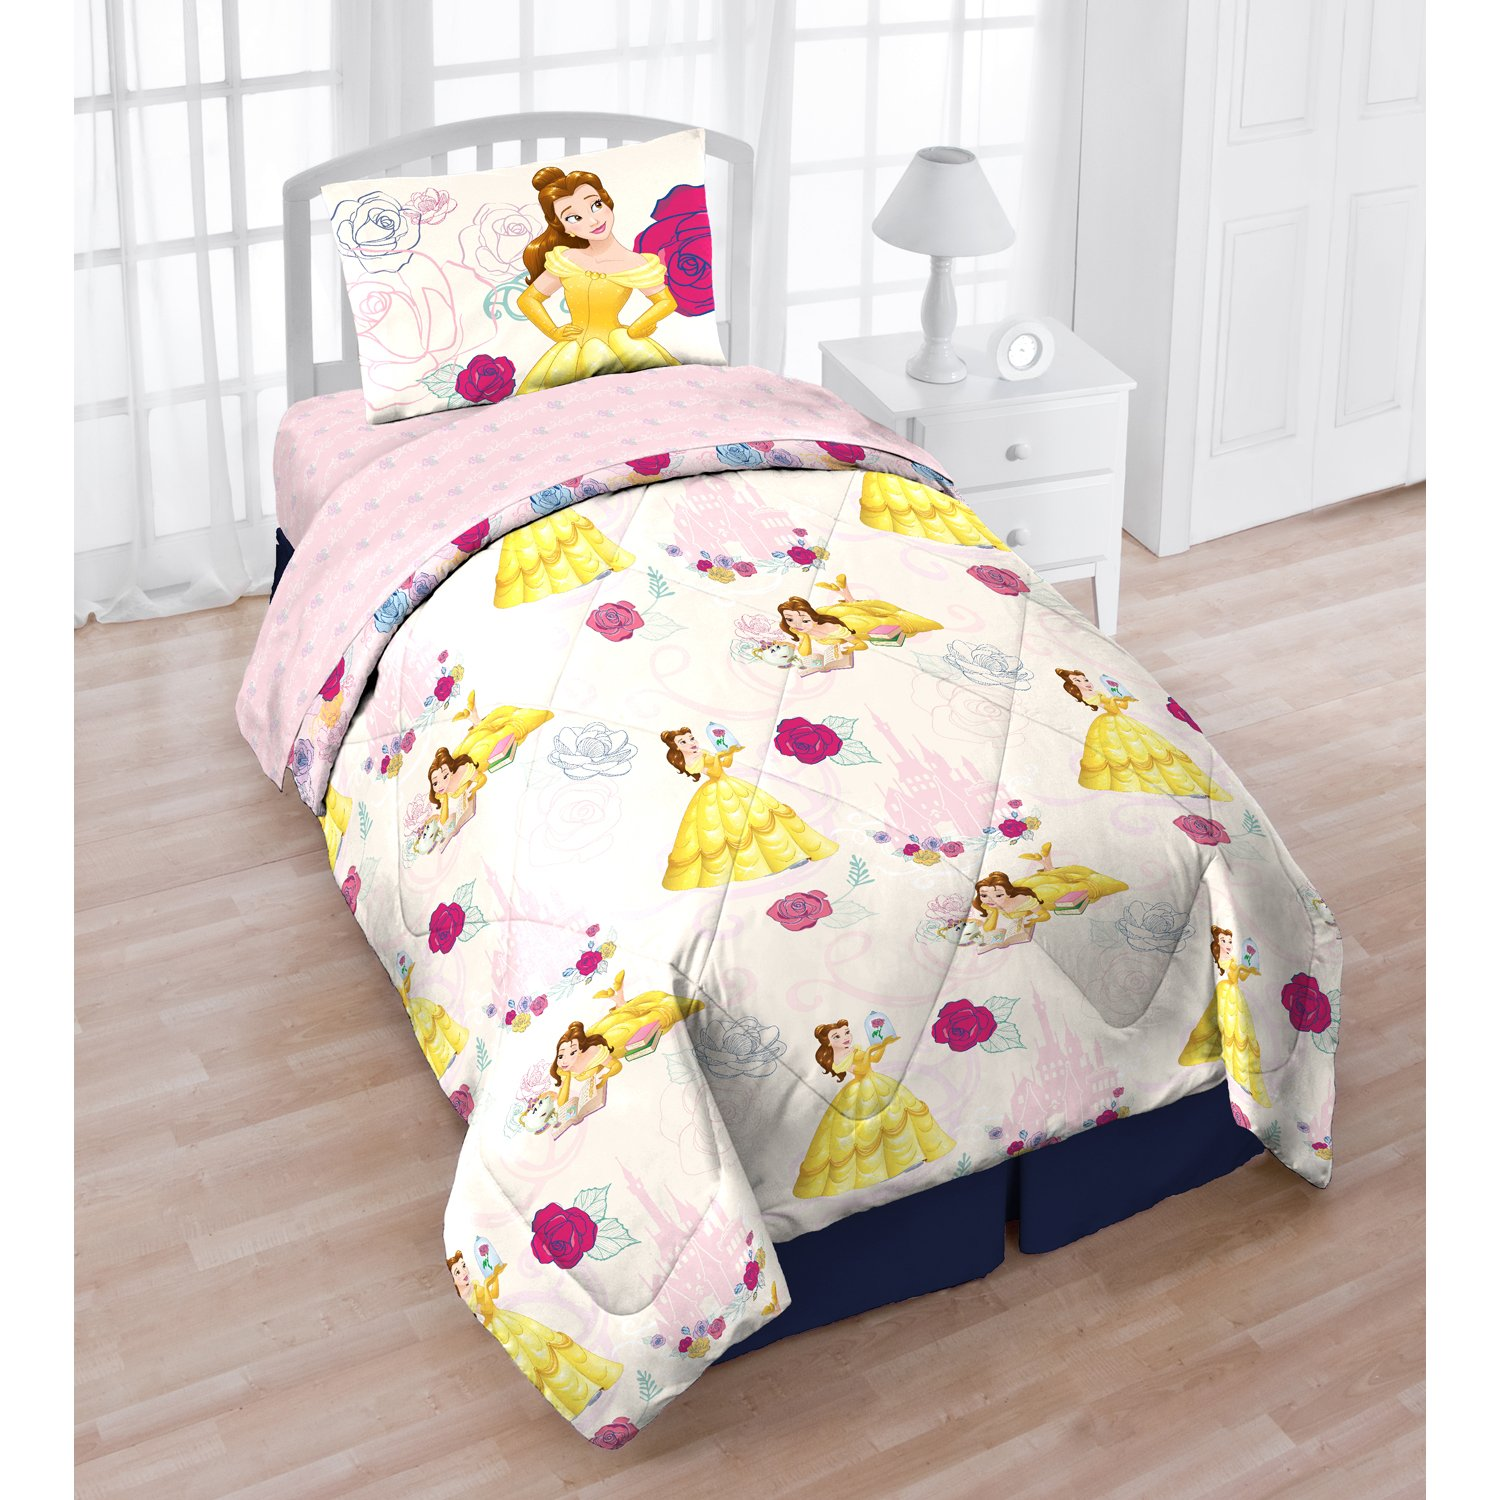 5 Piece White Pink Rose Kids Disneys Beauty and the Beast Comforter Twin Set, Girls Princess Belle Bedding Yellow Dress Roses Girly Fairy Tale, Polyester